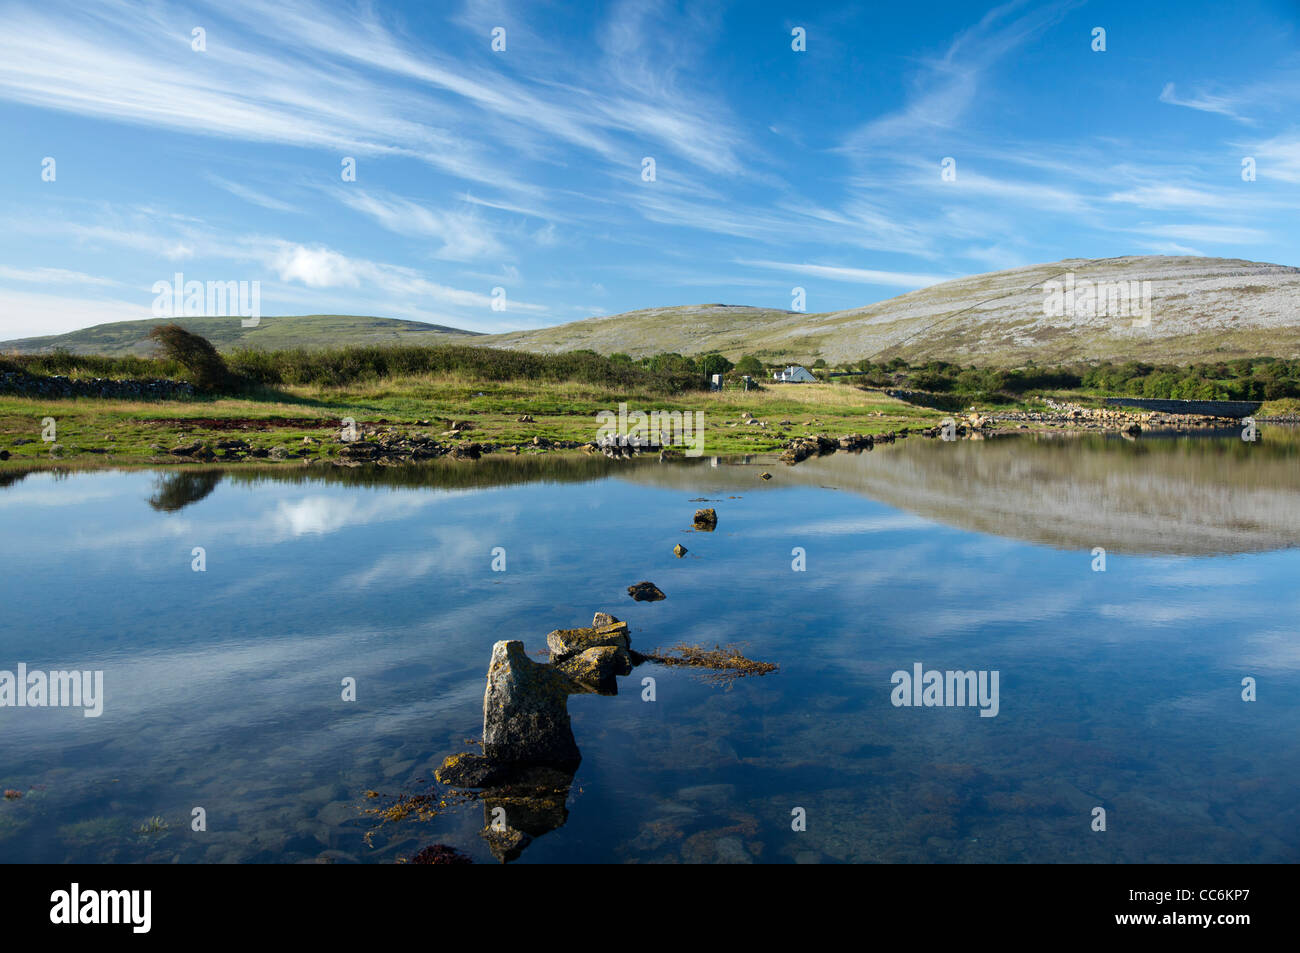 The limestone landscape of The Burren reflected in Ballyvaughan Bay, County Clare, Ireland. - Stock Image